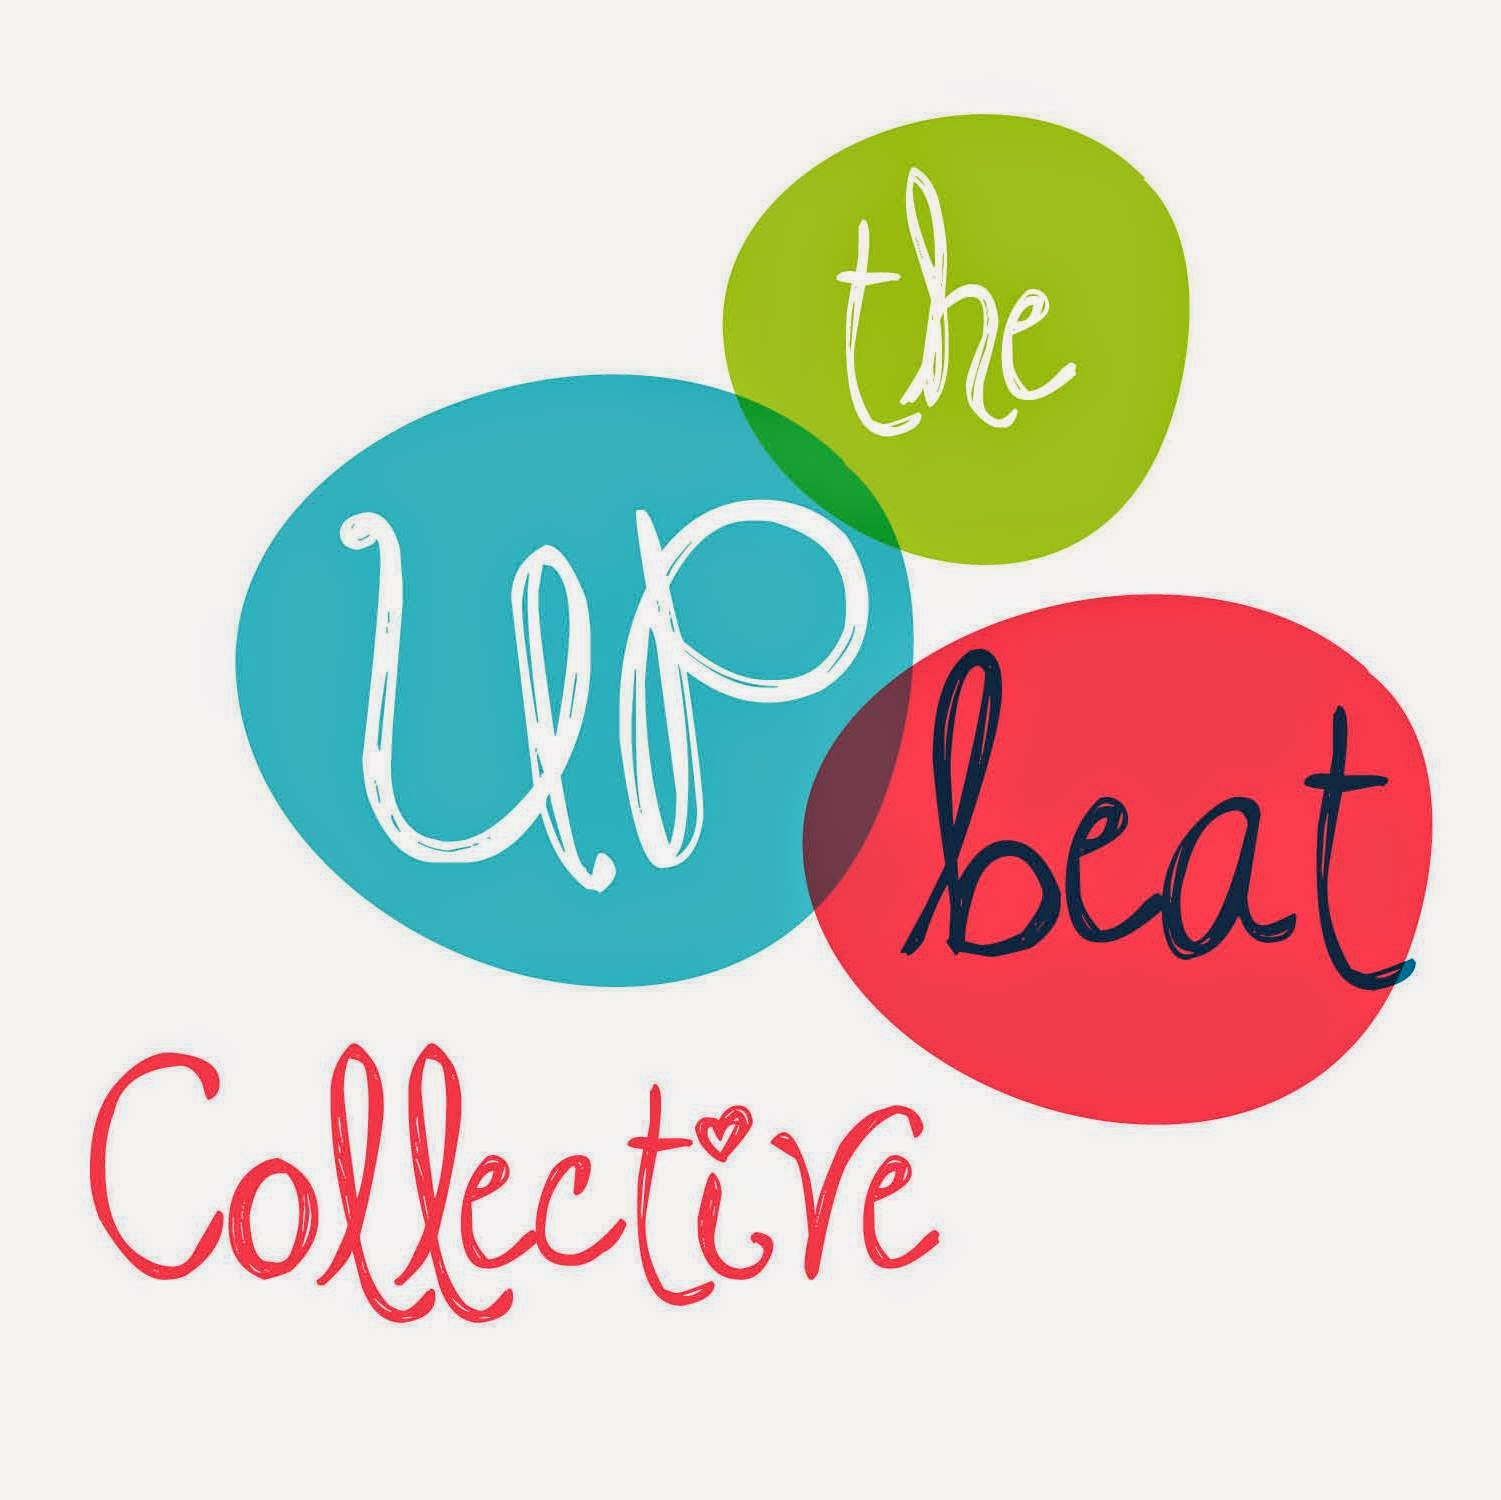 The Upbeat Collective